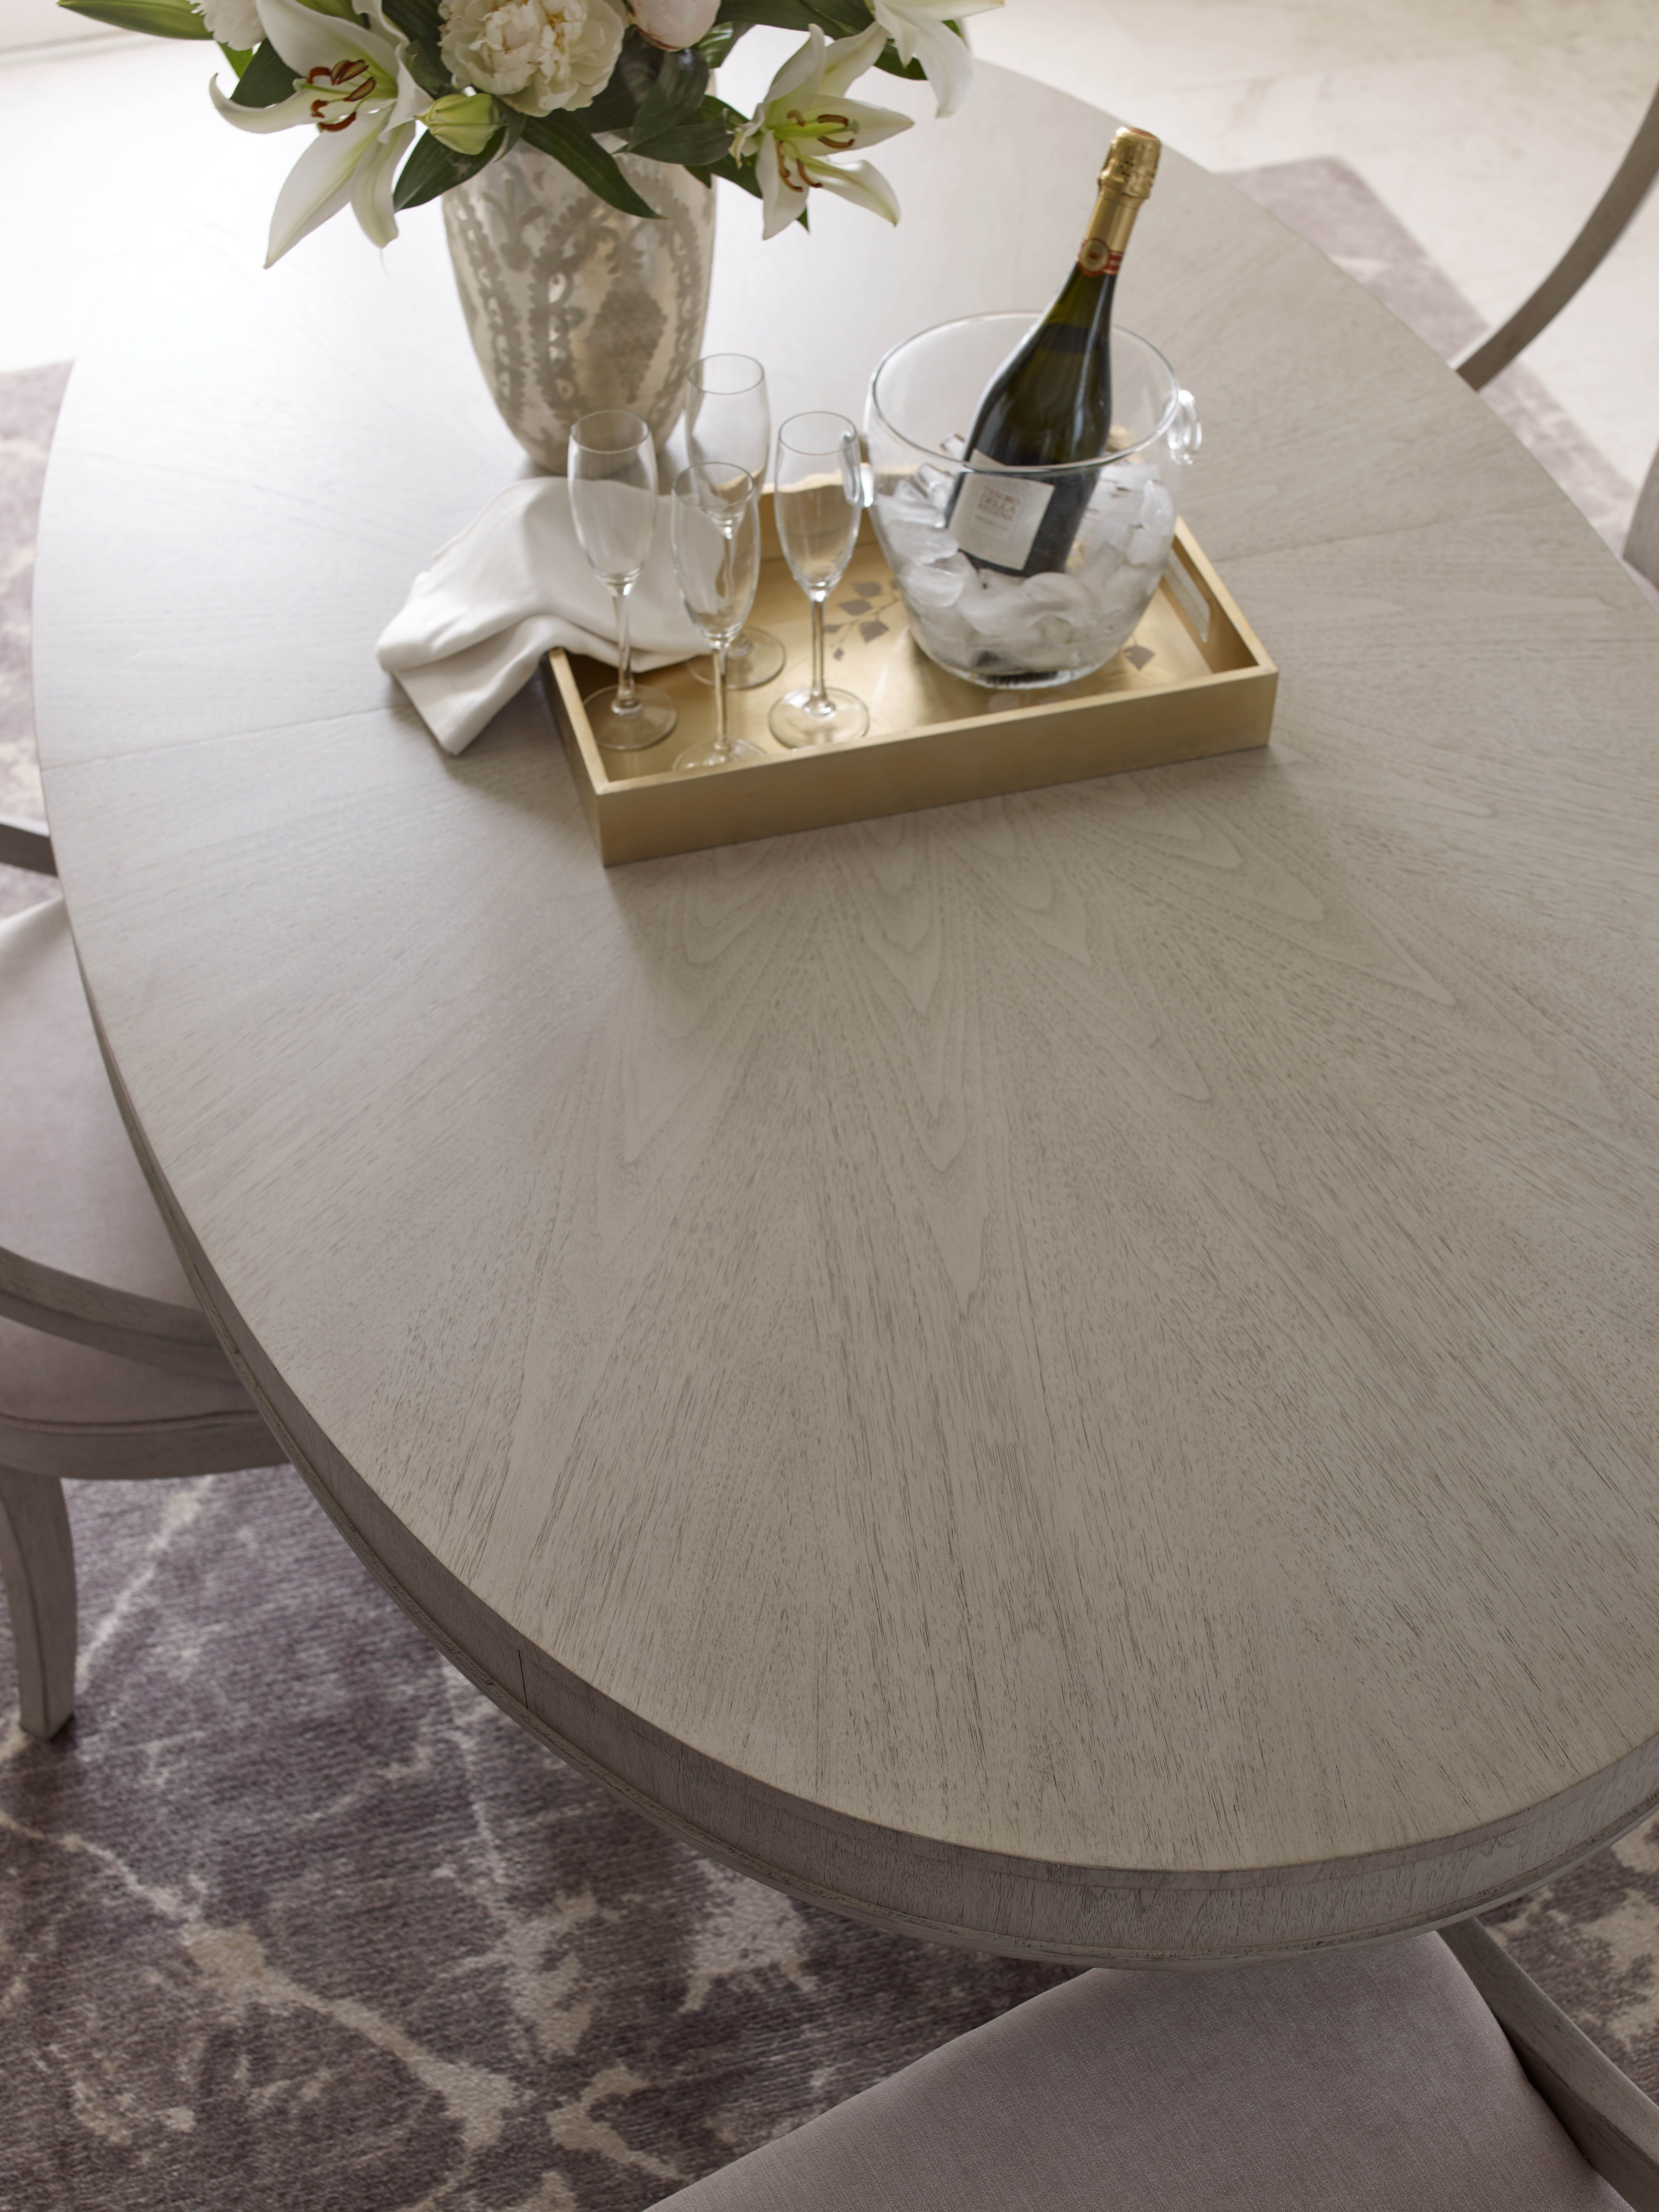 The Rachael Ray Home Cinema Collection Oval Pedestal Table Top